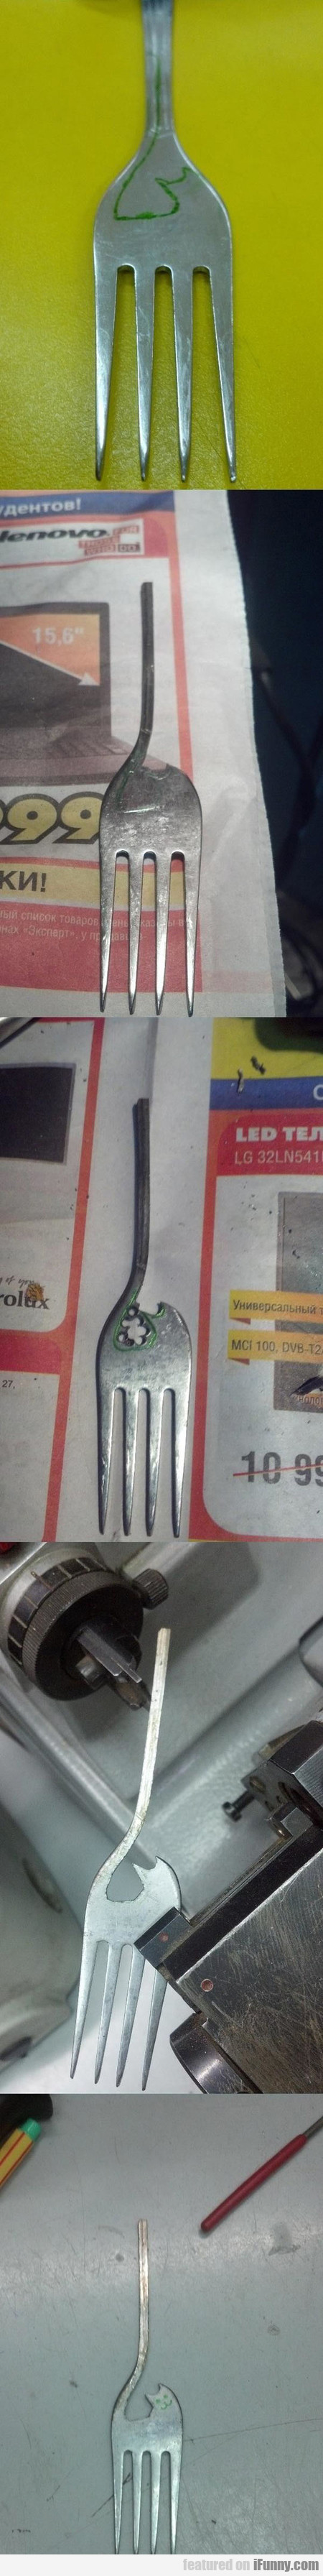 My Favorite Fork